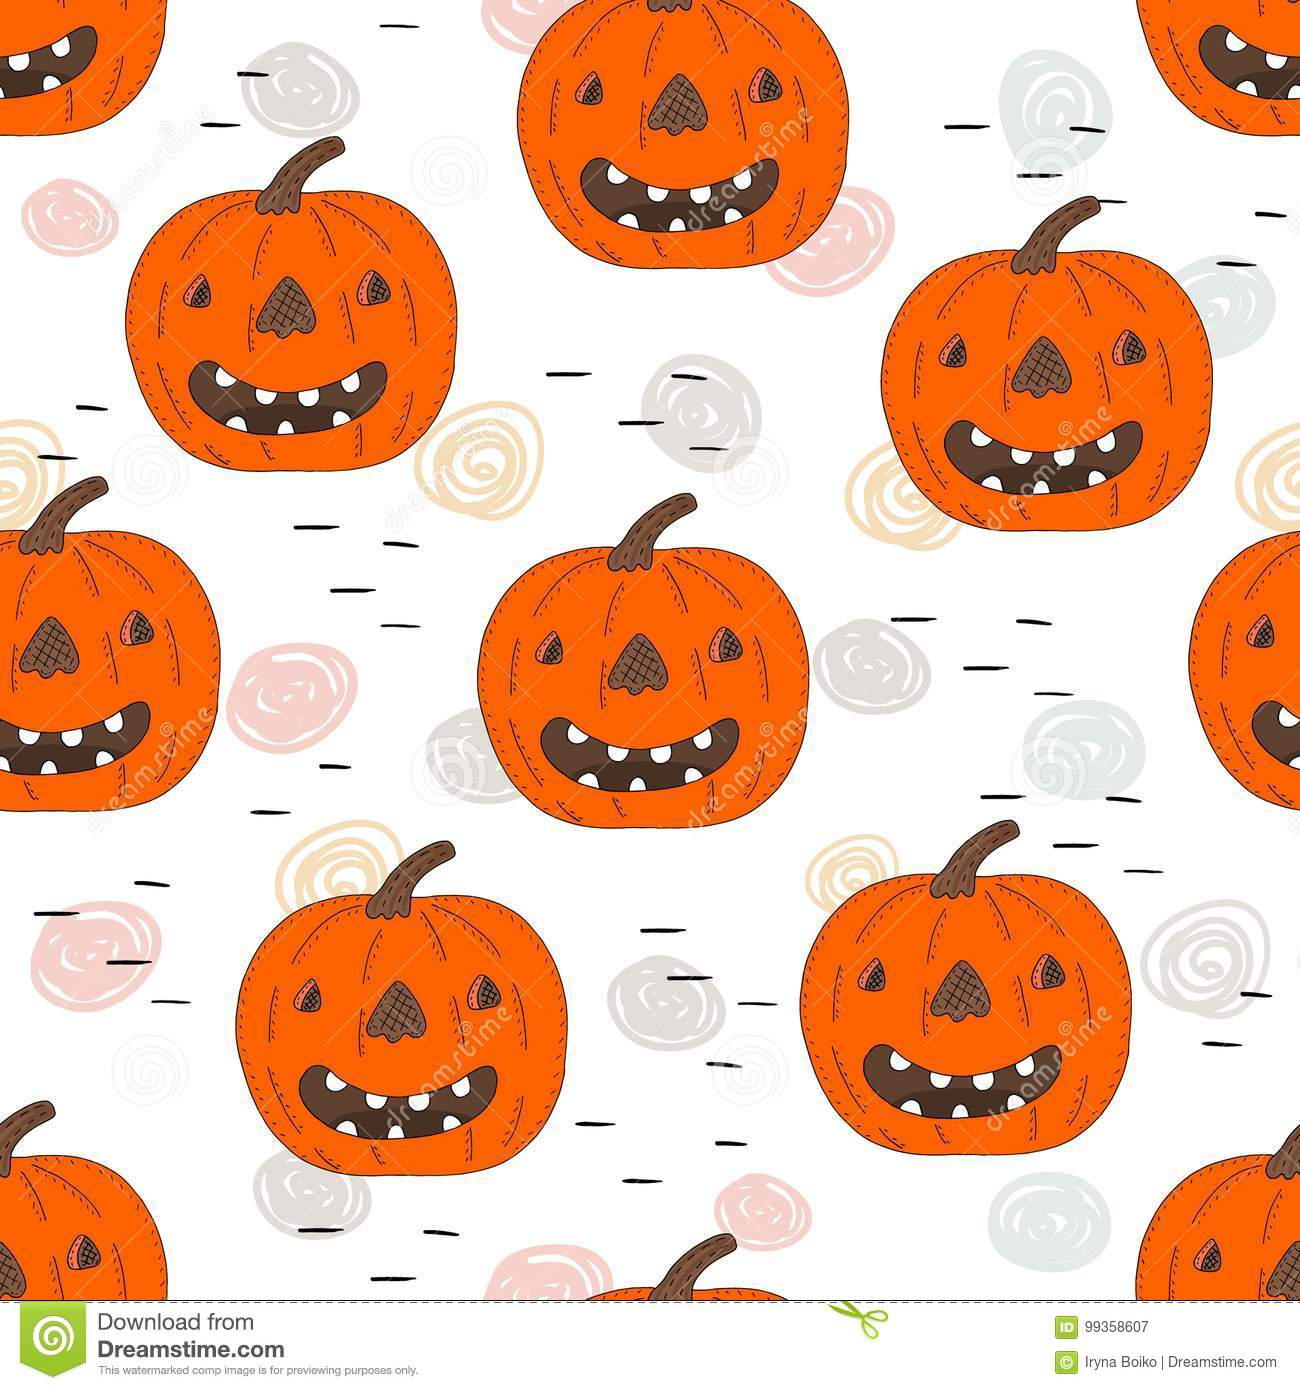 graphic about Printable Pumpkin Pictures named Joyful Halloween Print With Pumpkin. Printable Templates